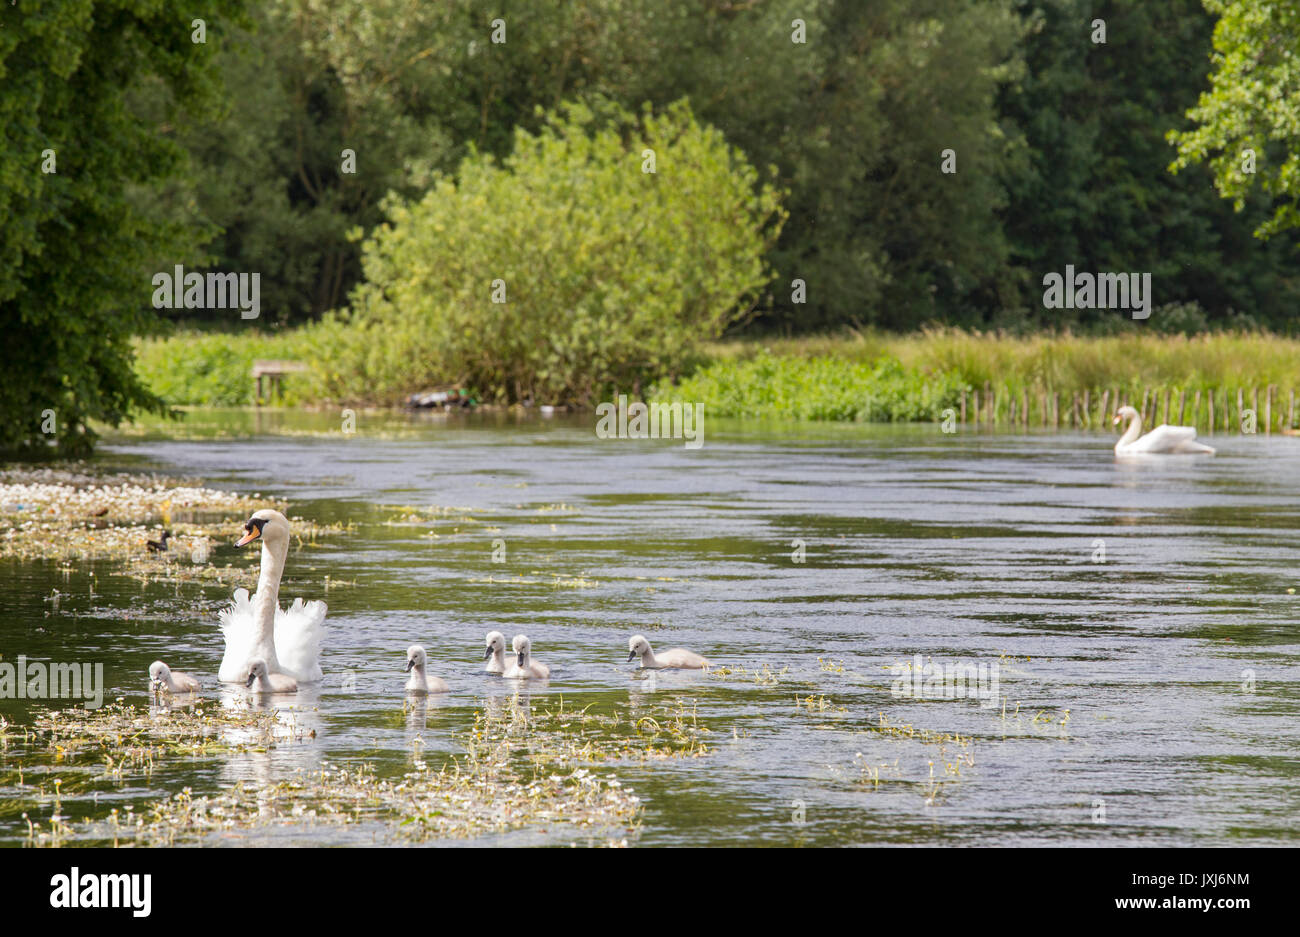 Mute Swan with Cygnets on the Wiltshire Avon in Salisbury, Wiltshire, England, UK - Stock Image